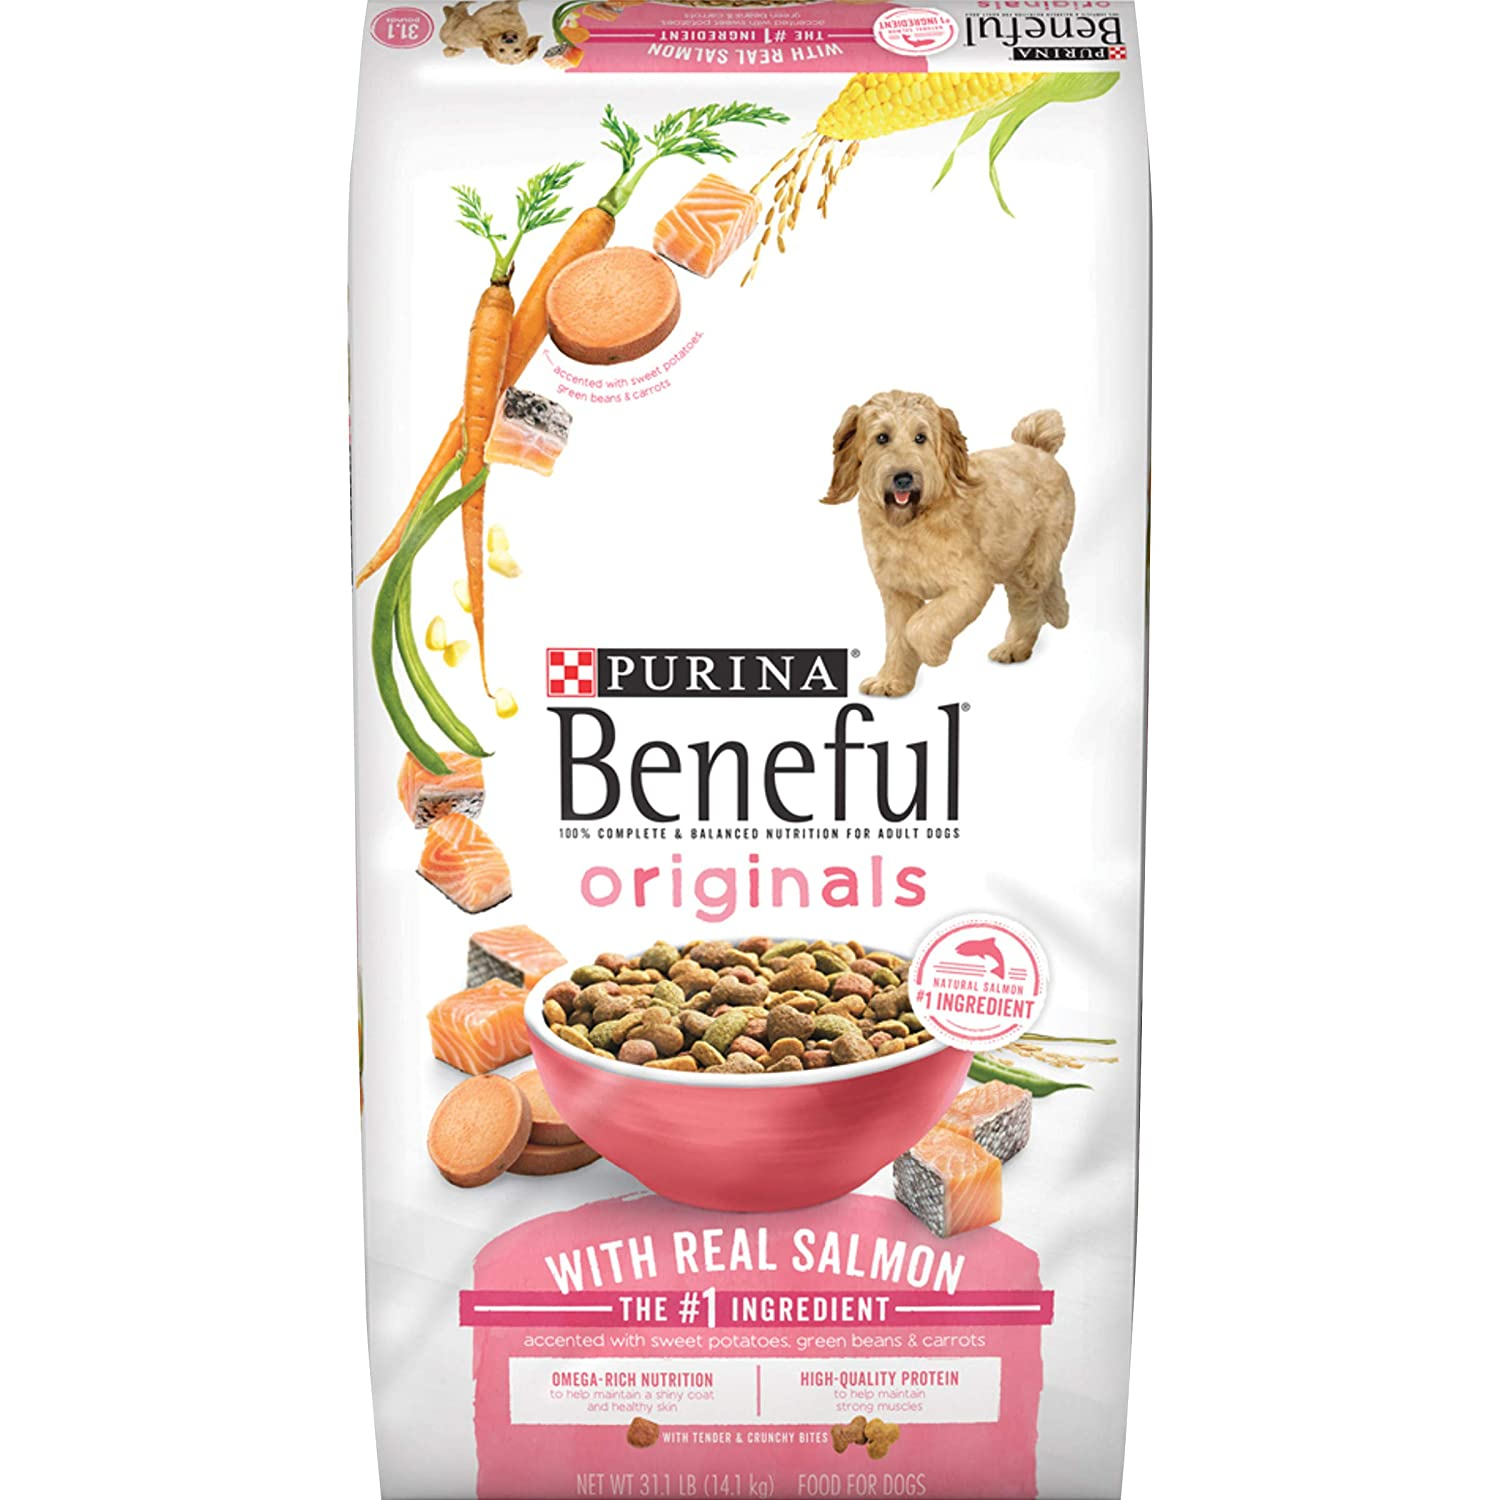 Purina Beneful Originals Adult Dry Dog Food – 31.1 lb. Bag